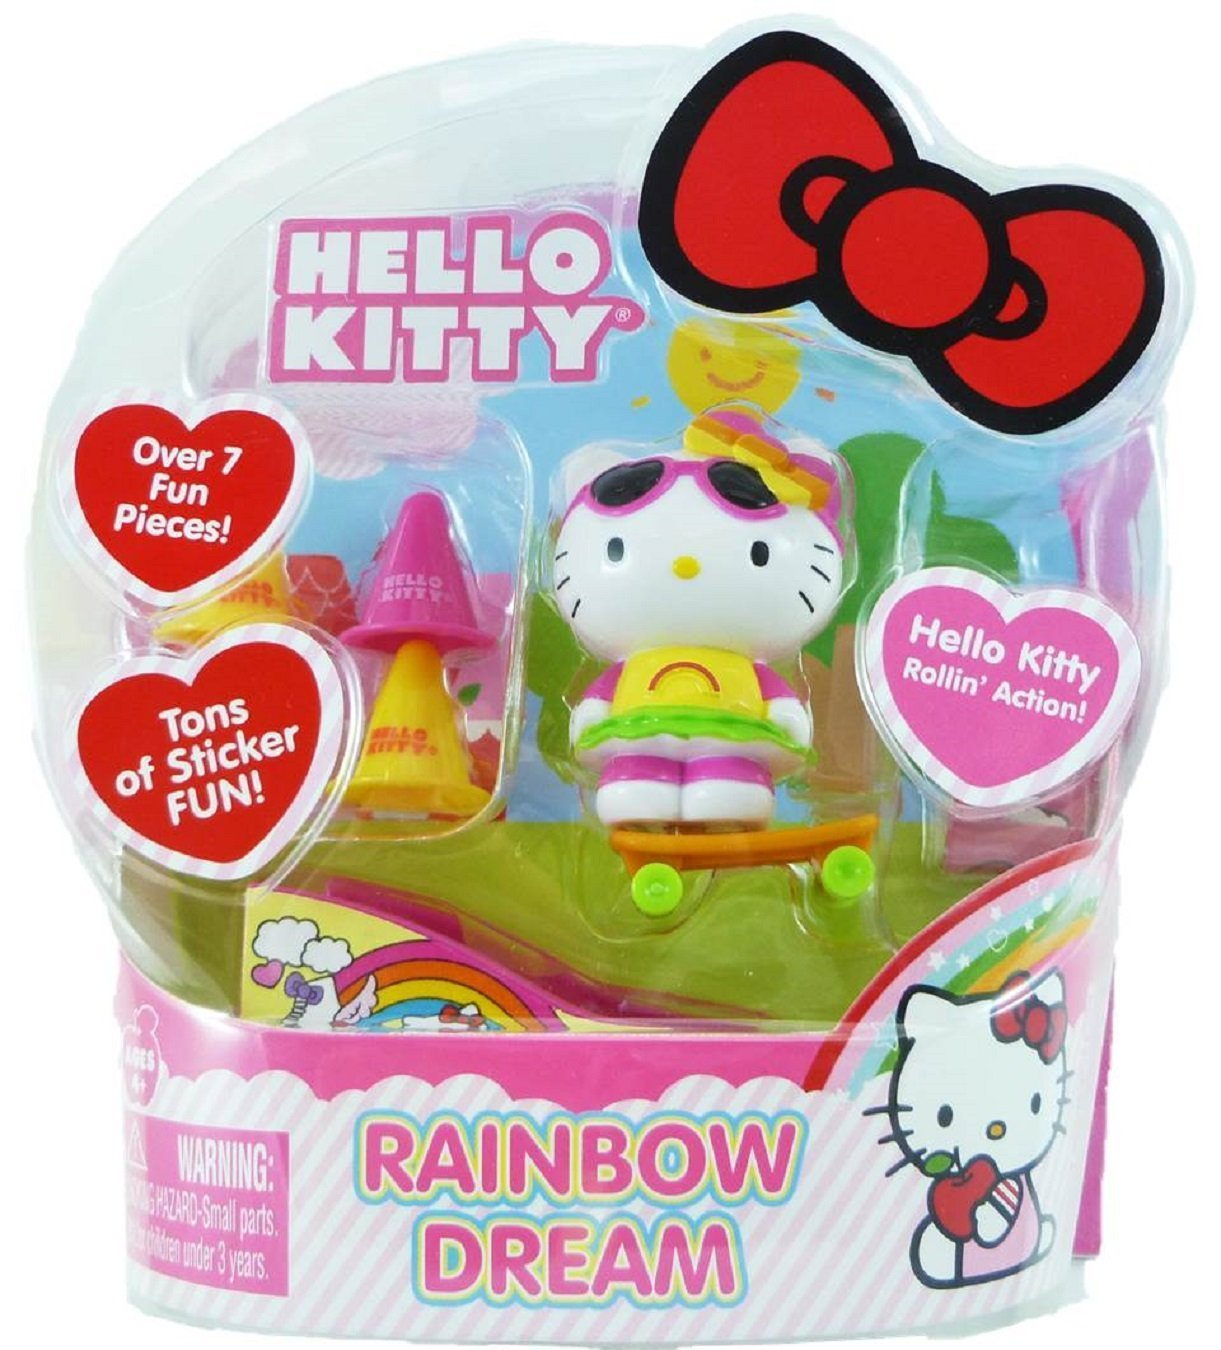 Hello Kitty Rollin' Action Mini Figure- Rainbow Dream by